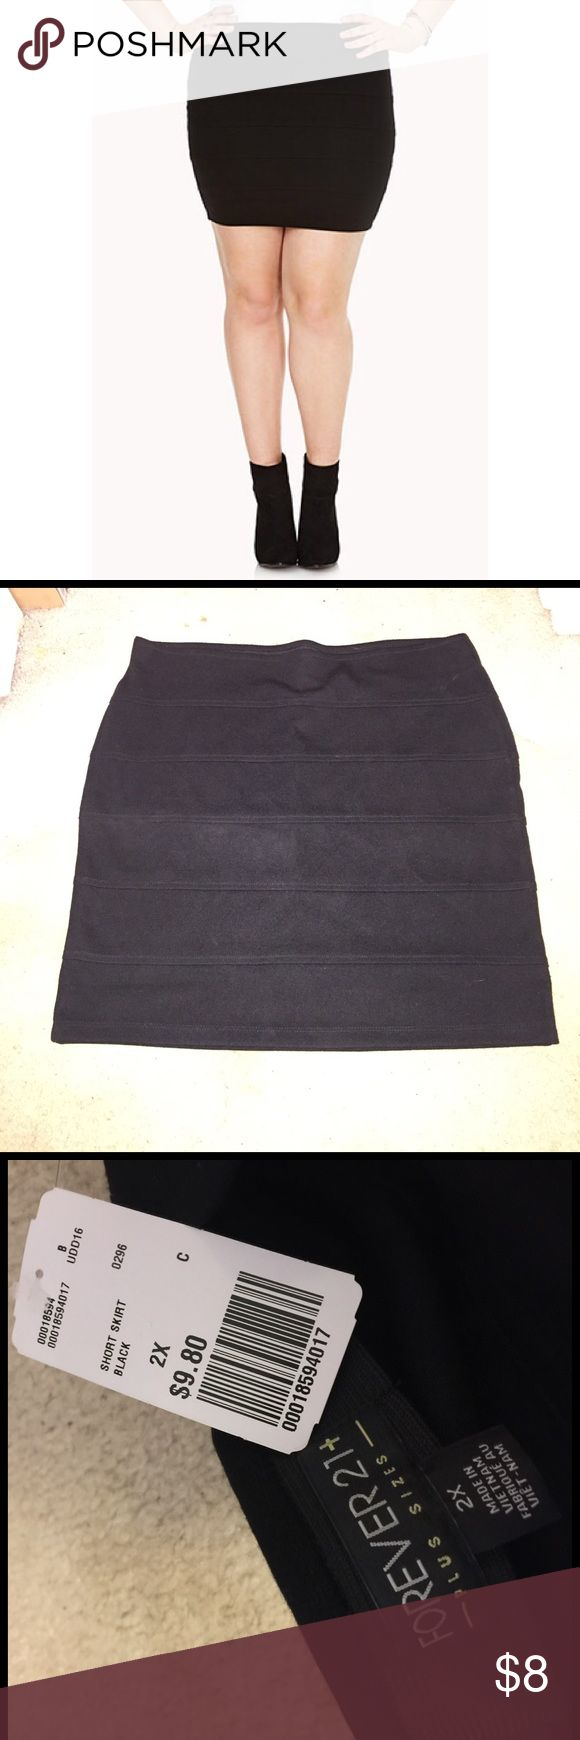 Forever 21 Plus skirt Forever 21 plus size black bandage skirt. In size 2x, selling because I already have a similar skirt. BRAND NEW NEVER WORN. Forever 21 Skirts Mini